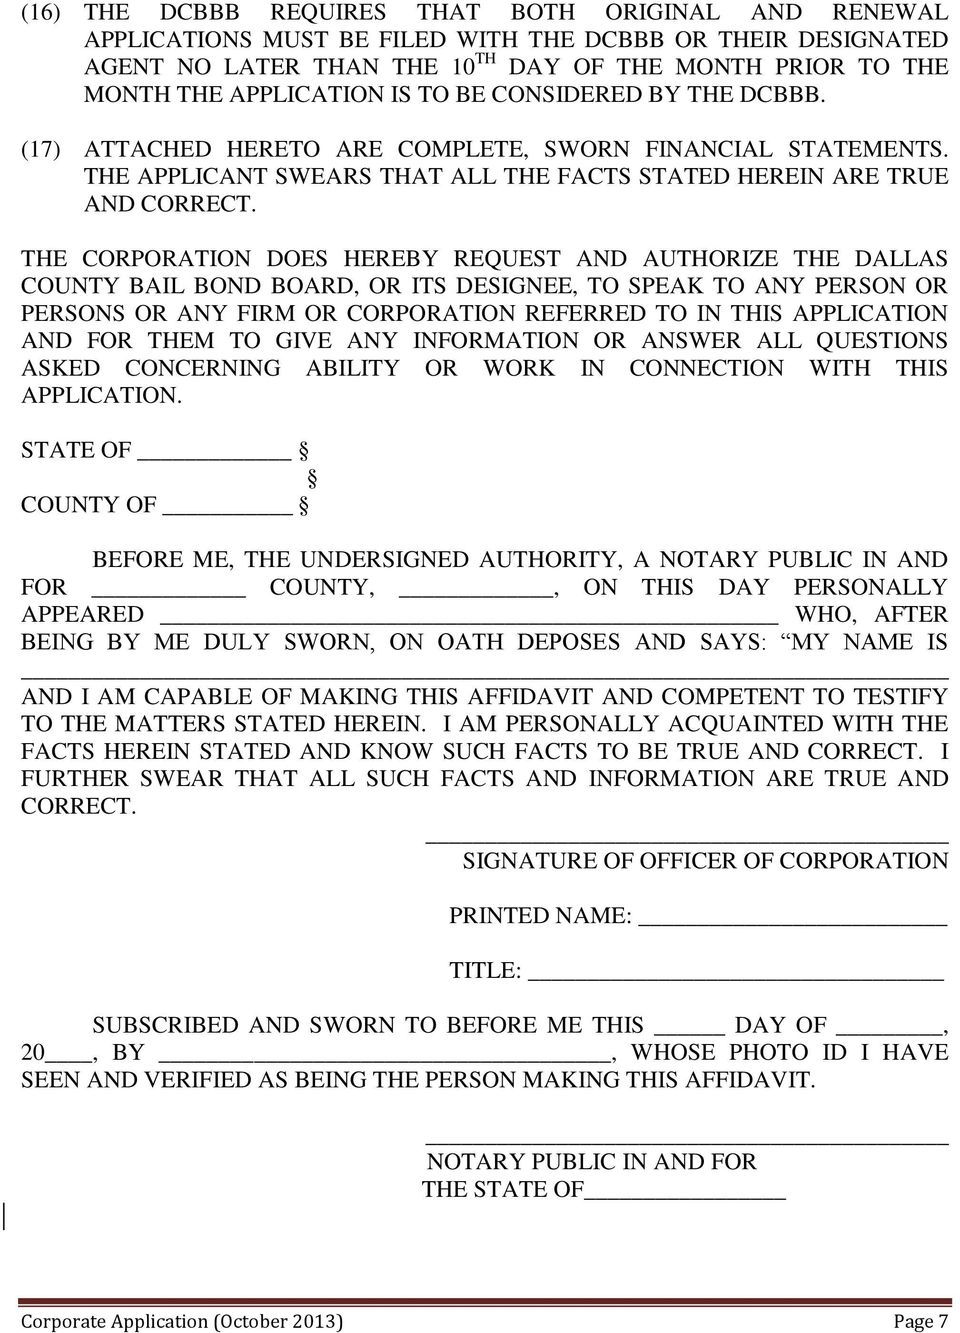 THE CORPORATION DOES HEREBY REQUEST AND AUTHORIZE THE DALLAS COUNTY BAIL BOND BOARD, OR ITS DESIGNEE, TO SPEAK TO ANY PERSON OR PERSONS OR ANY FIRM OR CORPORATION REFERRED TO IN THIS APPLICATION AND